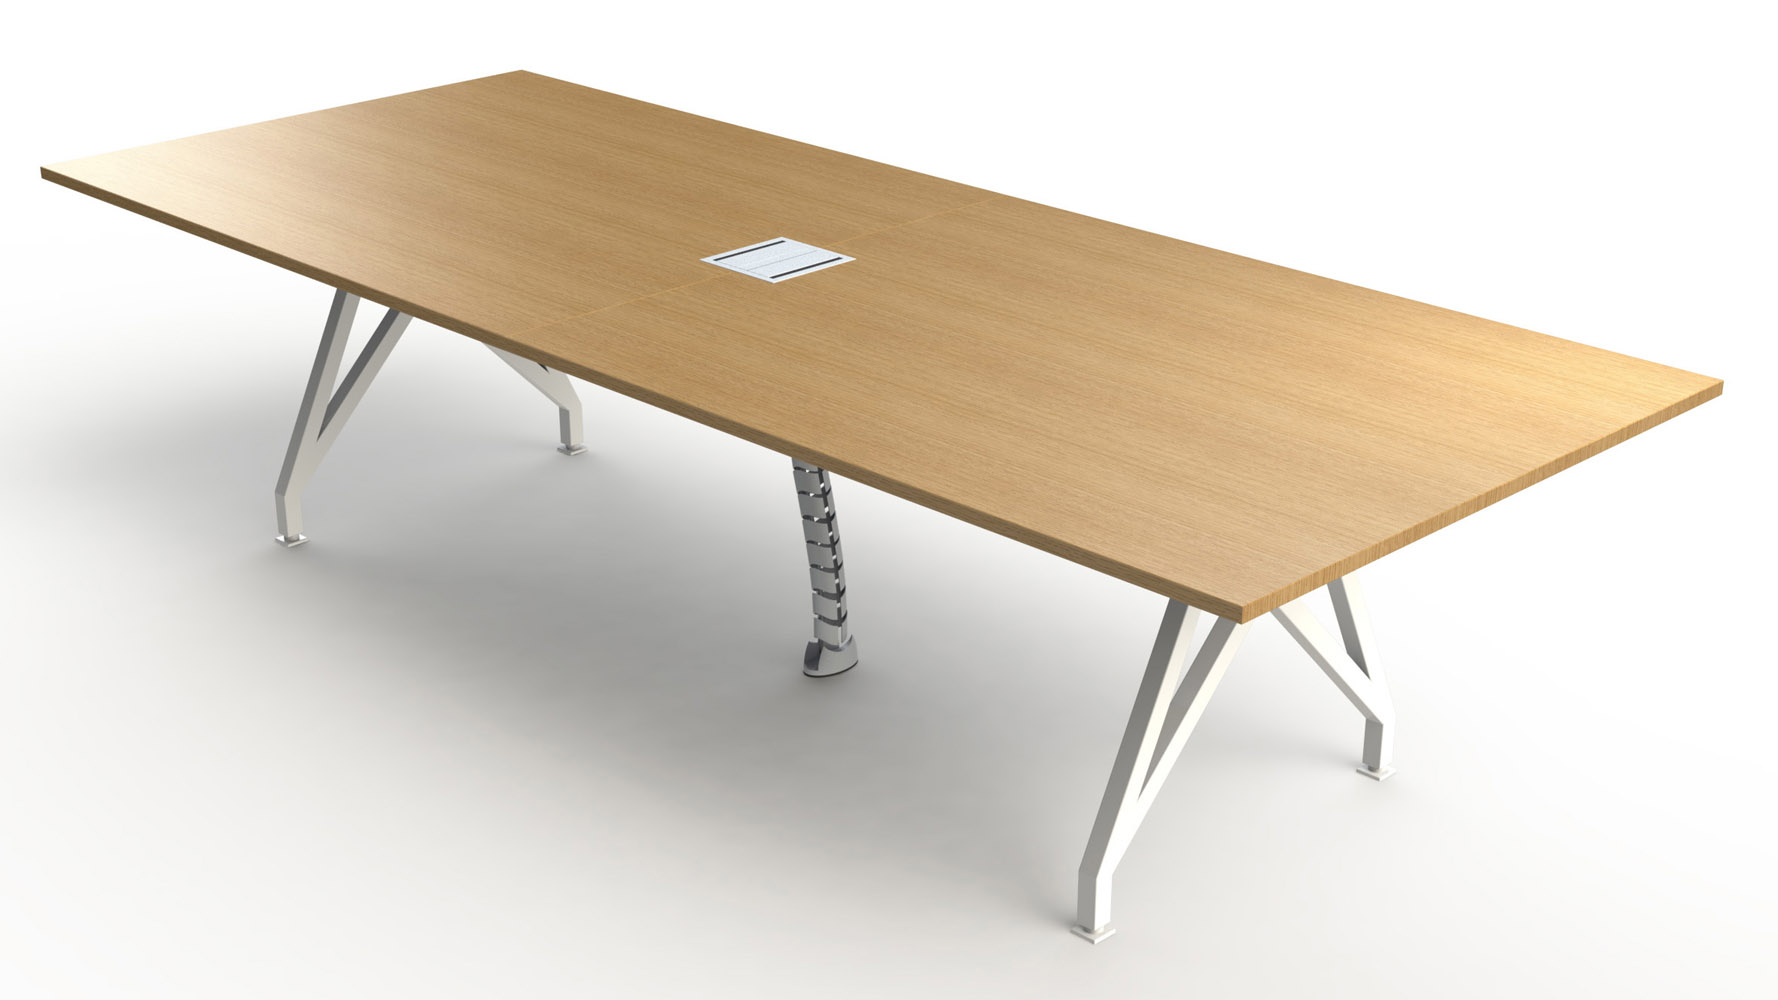 Conference table fresh 10 ft folding table for 10 foot conference table